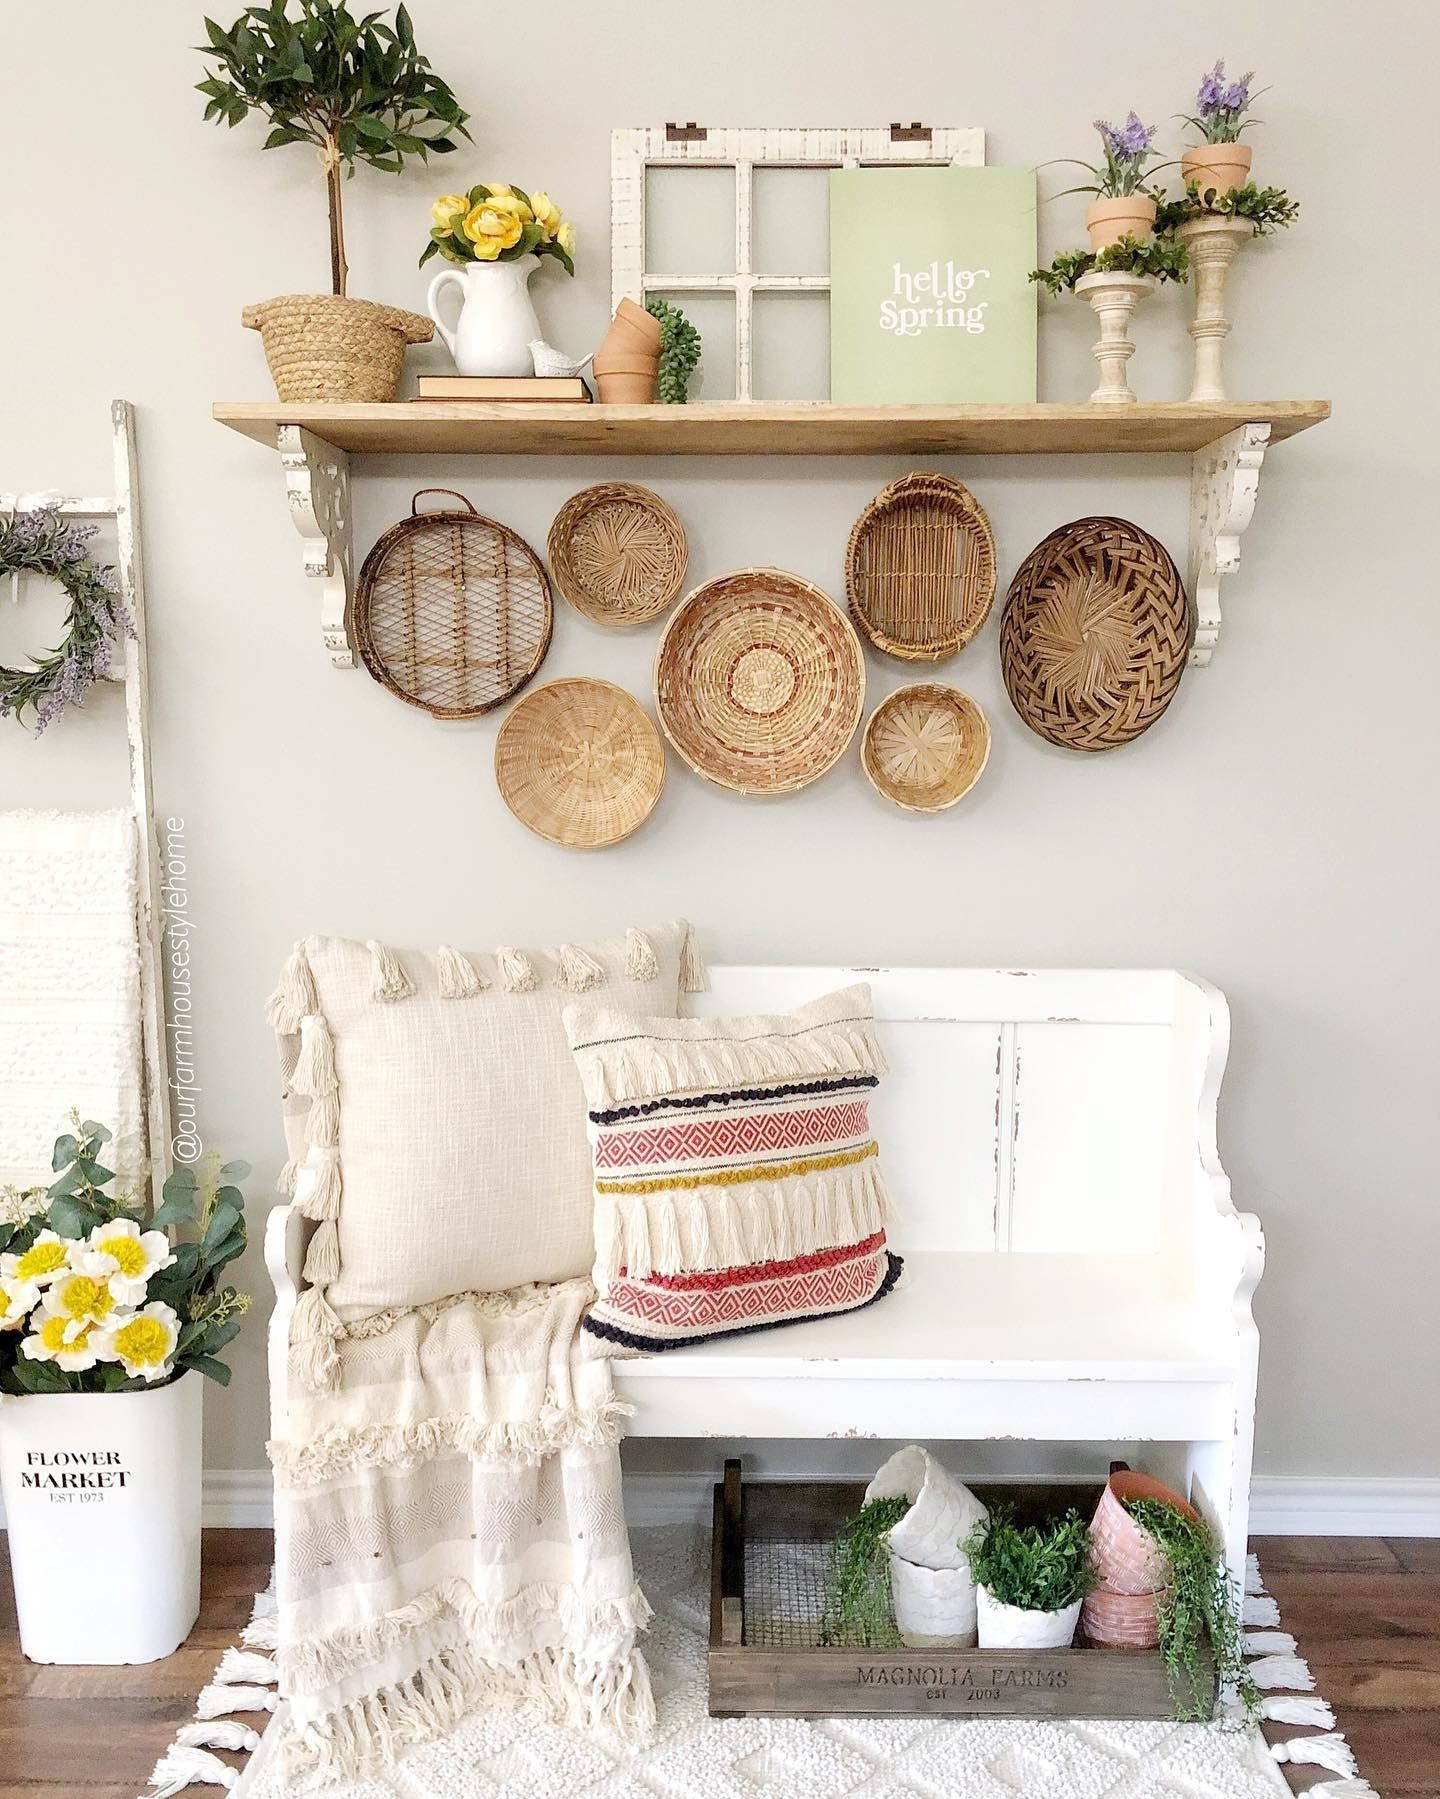 Here S Some Inspiration For Your Next Entryway Refresh Tap The Image To Browse All Benches And Ottomans To Find The Perfe In 2020 Kirkland Home Decor Home Decor Decor